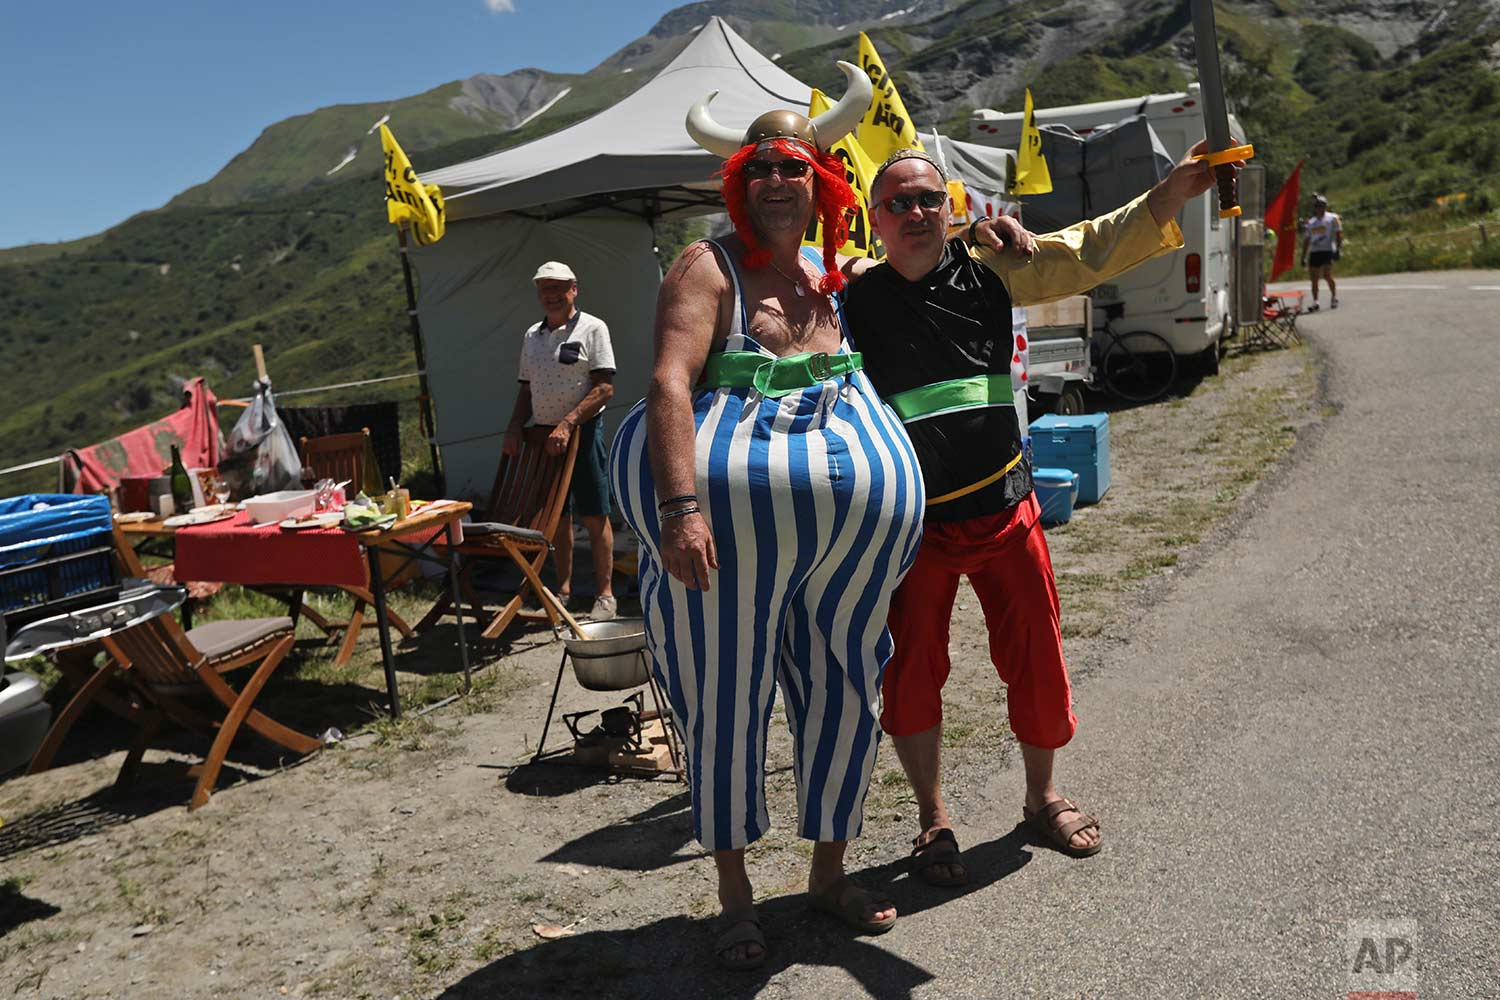 Two men dressed as French comics characters Asterix and Obelix line the road during the twelfth stage of the Tour de France cycling race over 175.5 kilometers (109 miles) with start in Bourg-Saint-Maurice Les Arcs and Alpe d'Huez, France, Thursday July 19, 2018. (AP Photo/Peter Dejong)